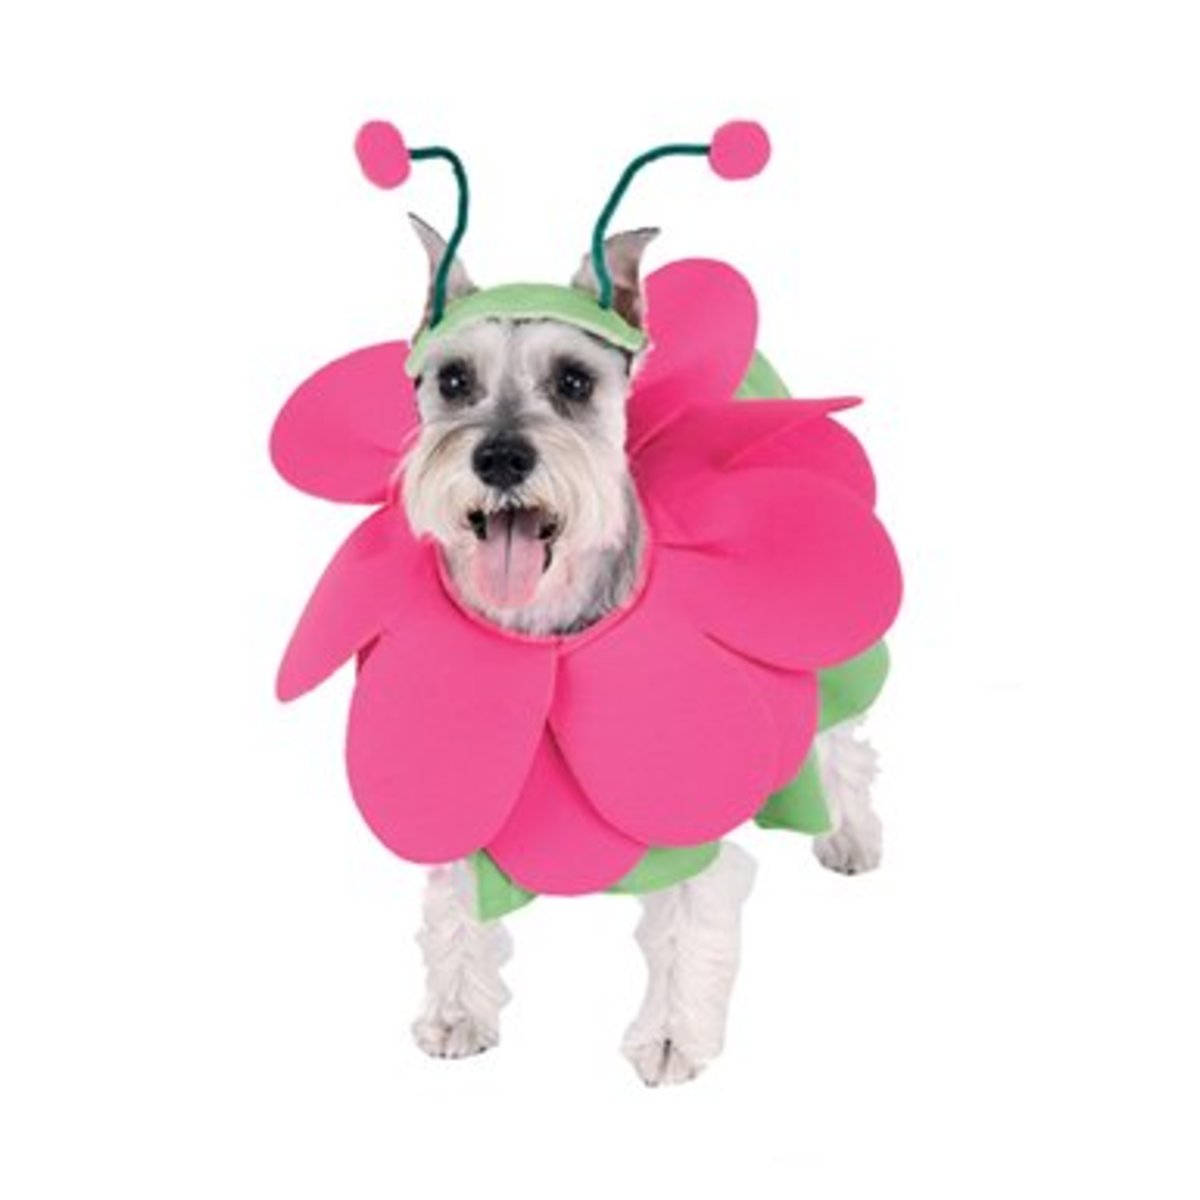 Is it a snout or the cutest flower dog costume ever!